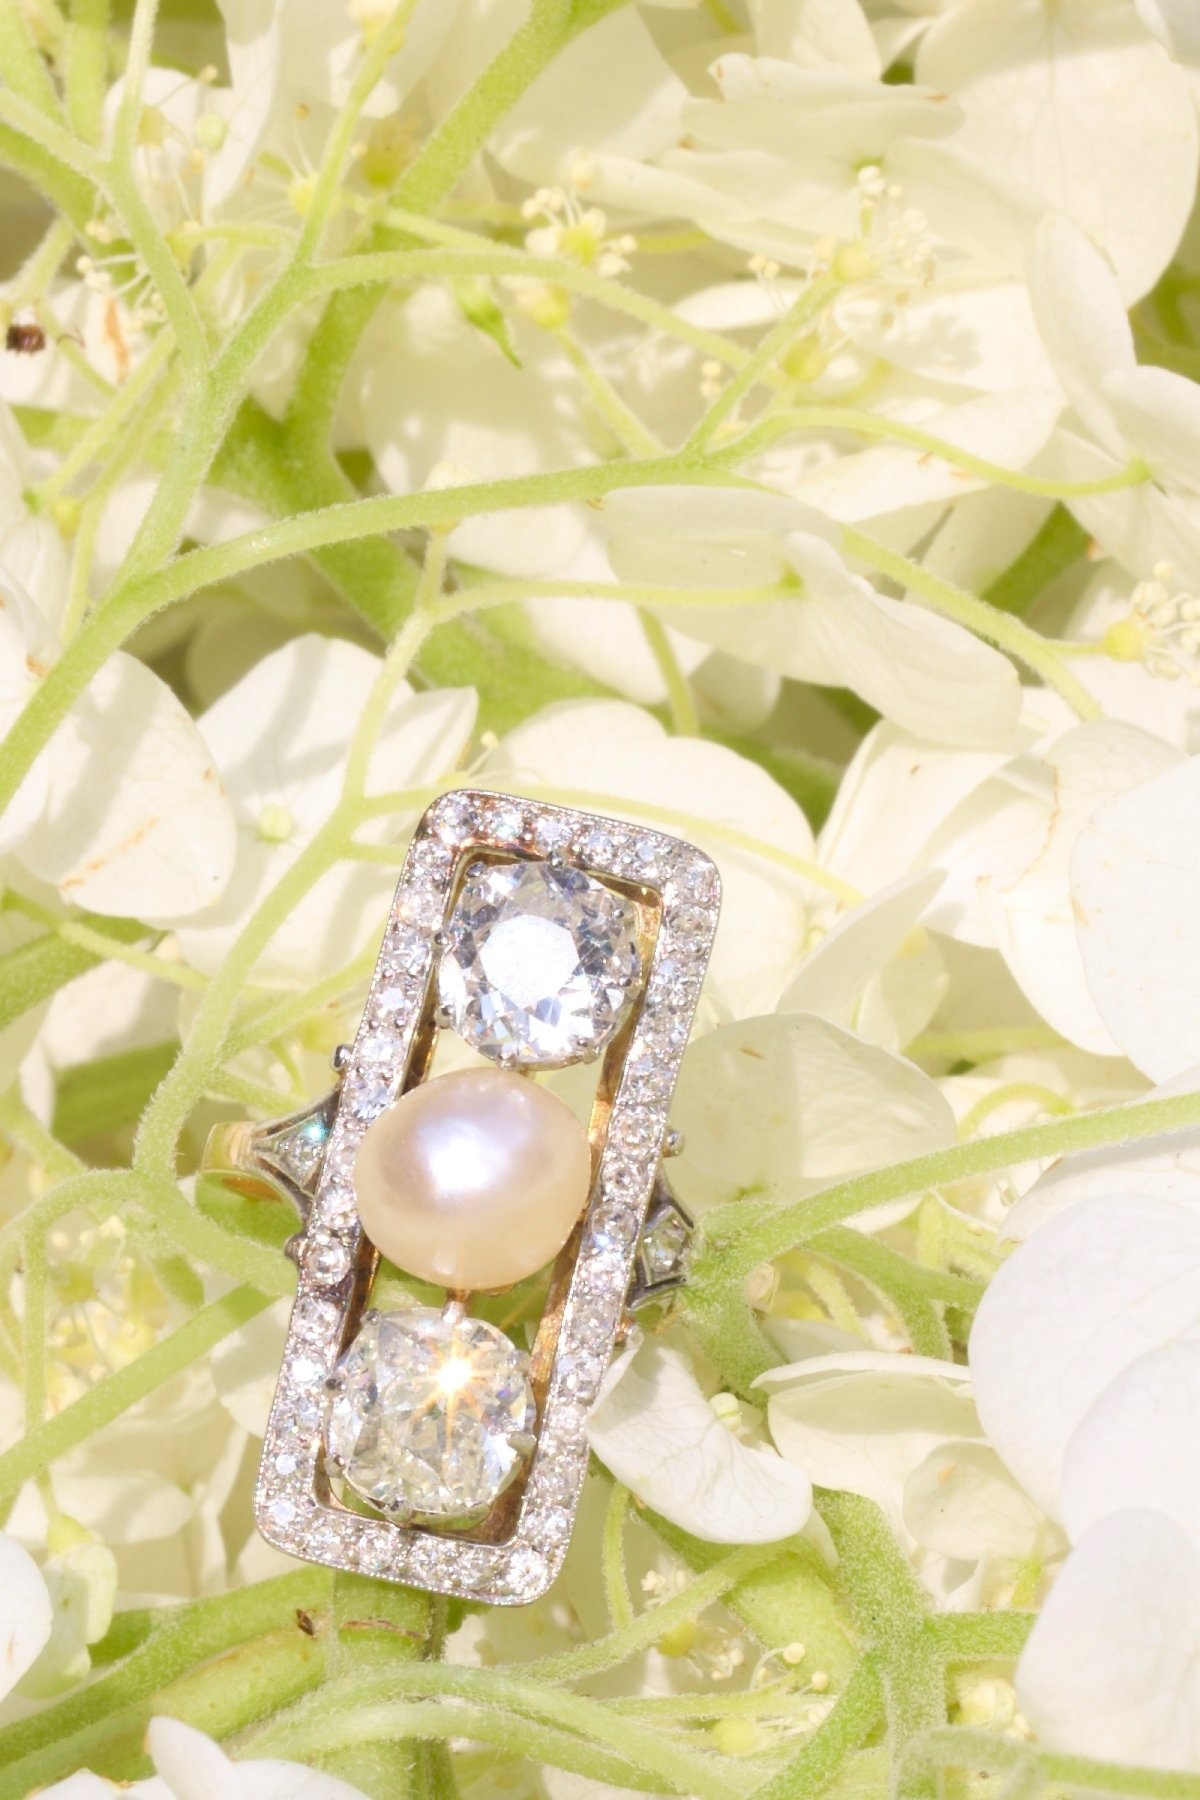 Click the picture to get to see this Large impressive Belle Epoque Art Deco diamond and pearl engagement ring.